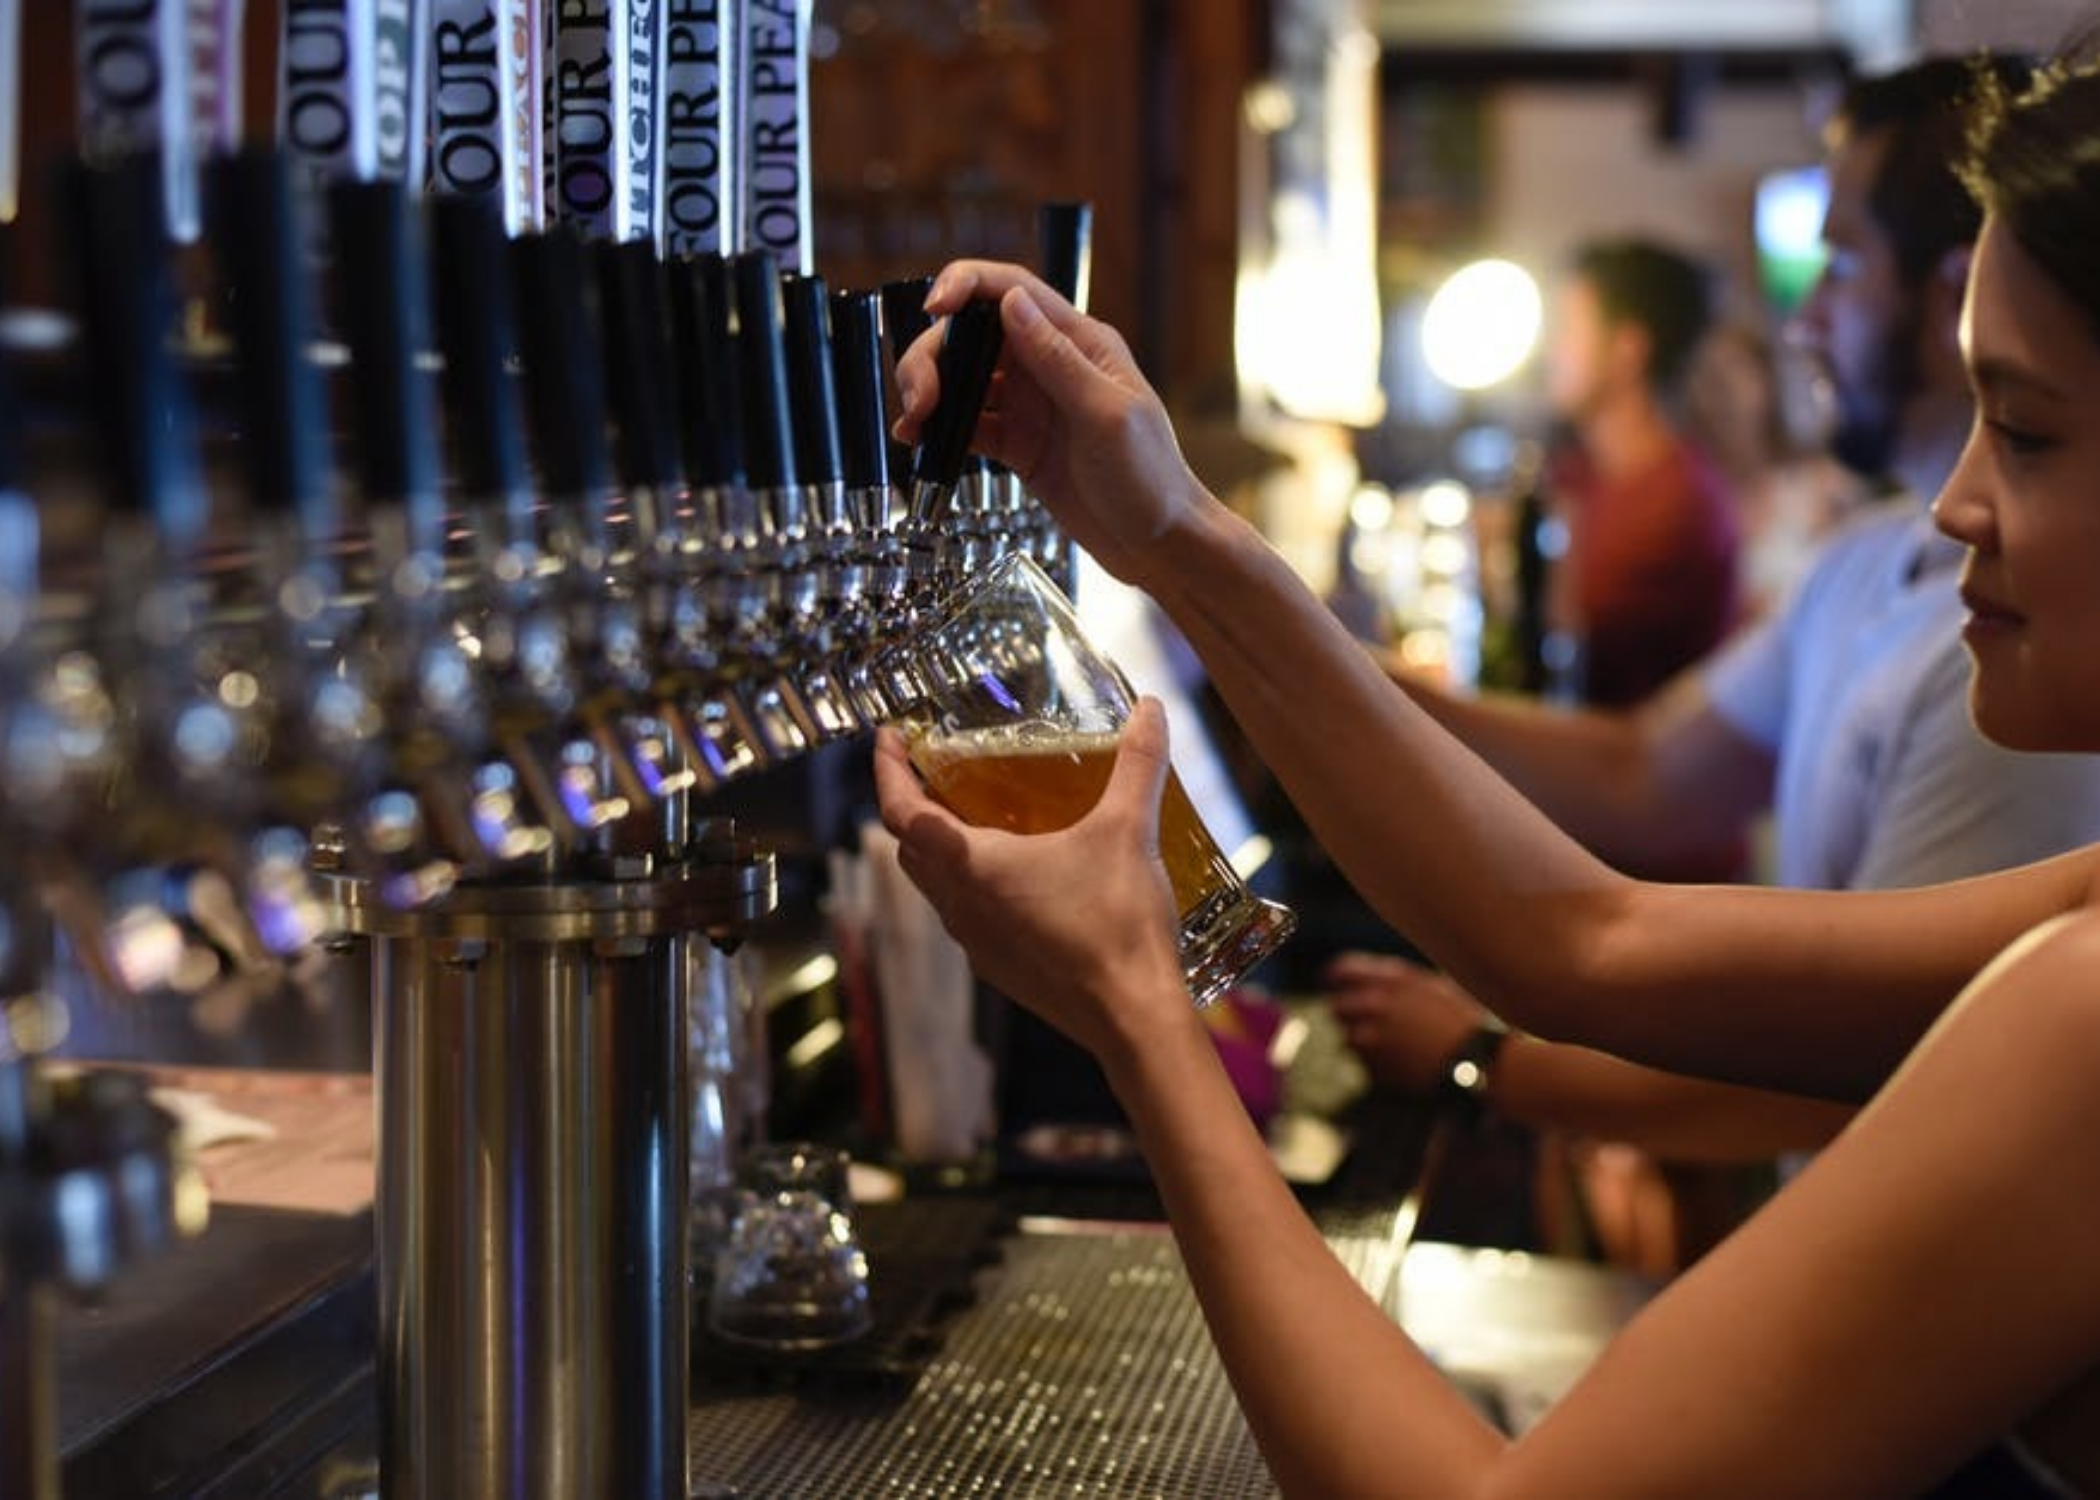 A brief visit to the 3 high-quality Craft Breweries around DFW